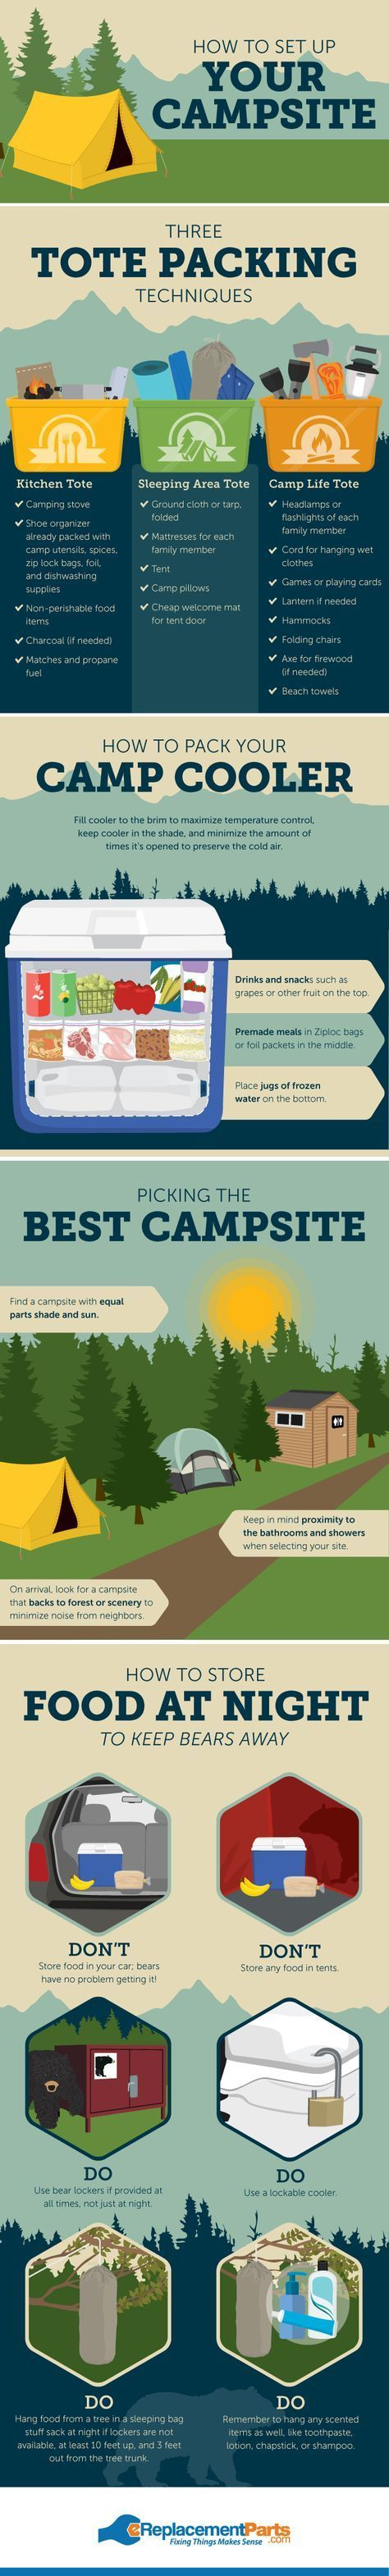 How to pack for a camping trip and organize your campsite - Pitstops for Kids